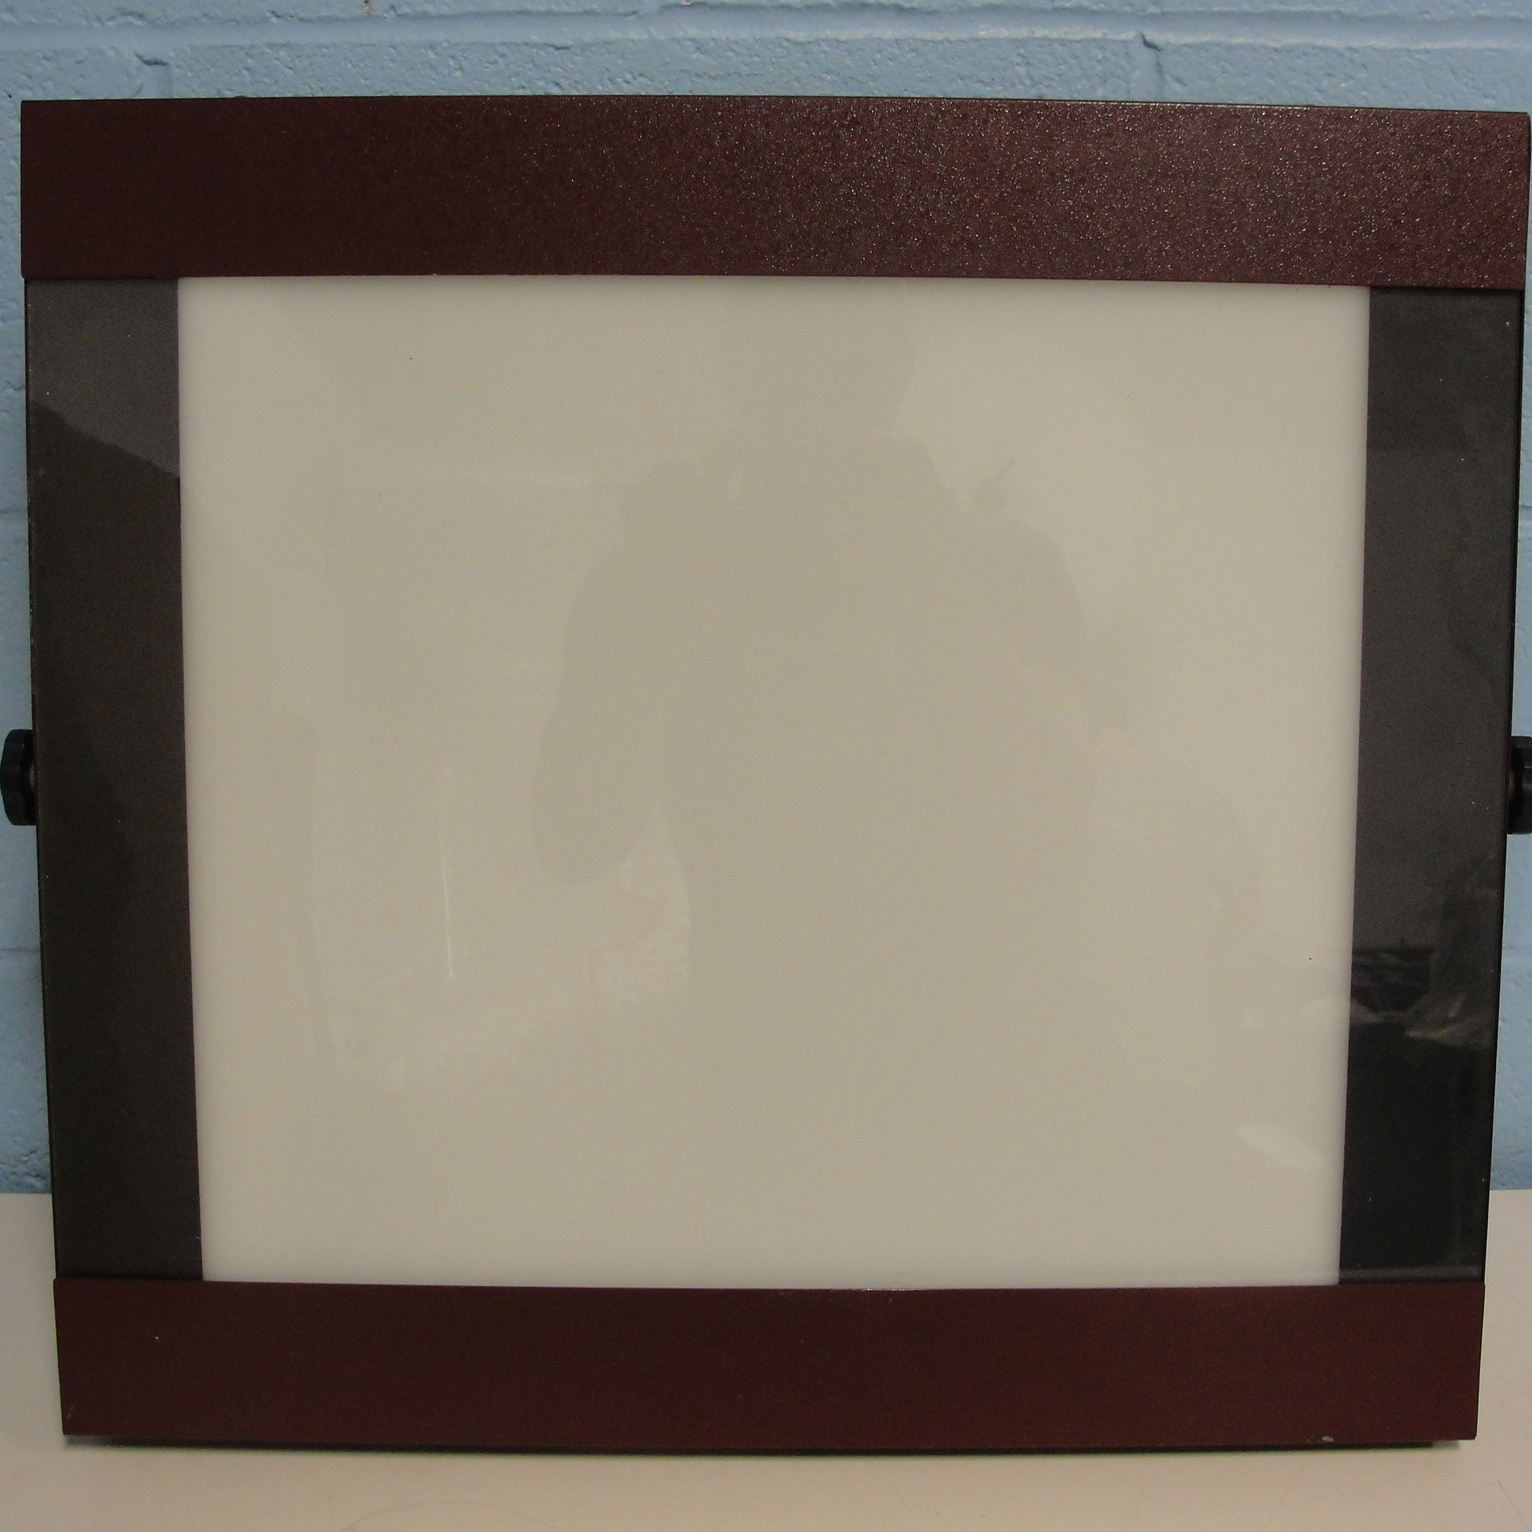 Hoefer Scientific PH-90 Mighty Bright Visible Light Box Image